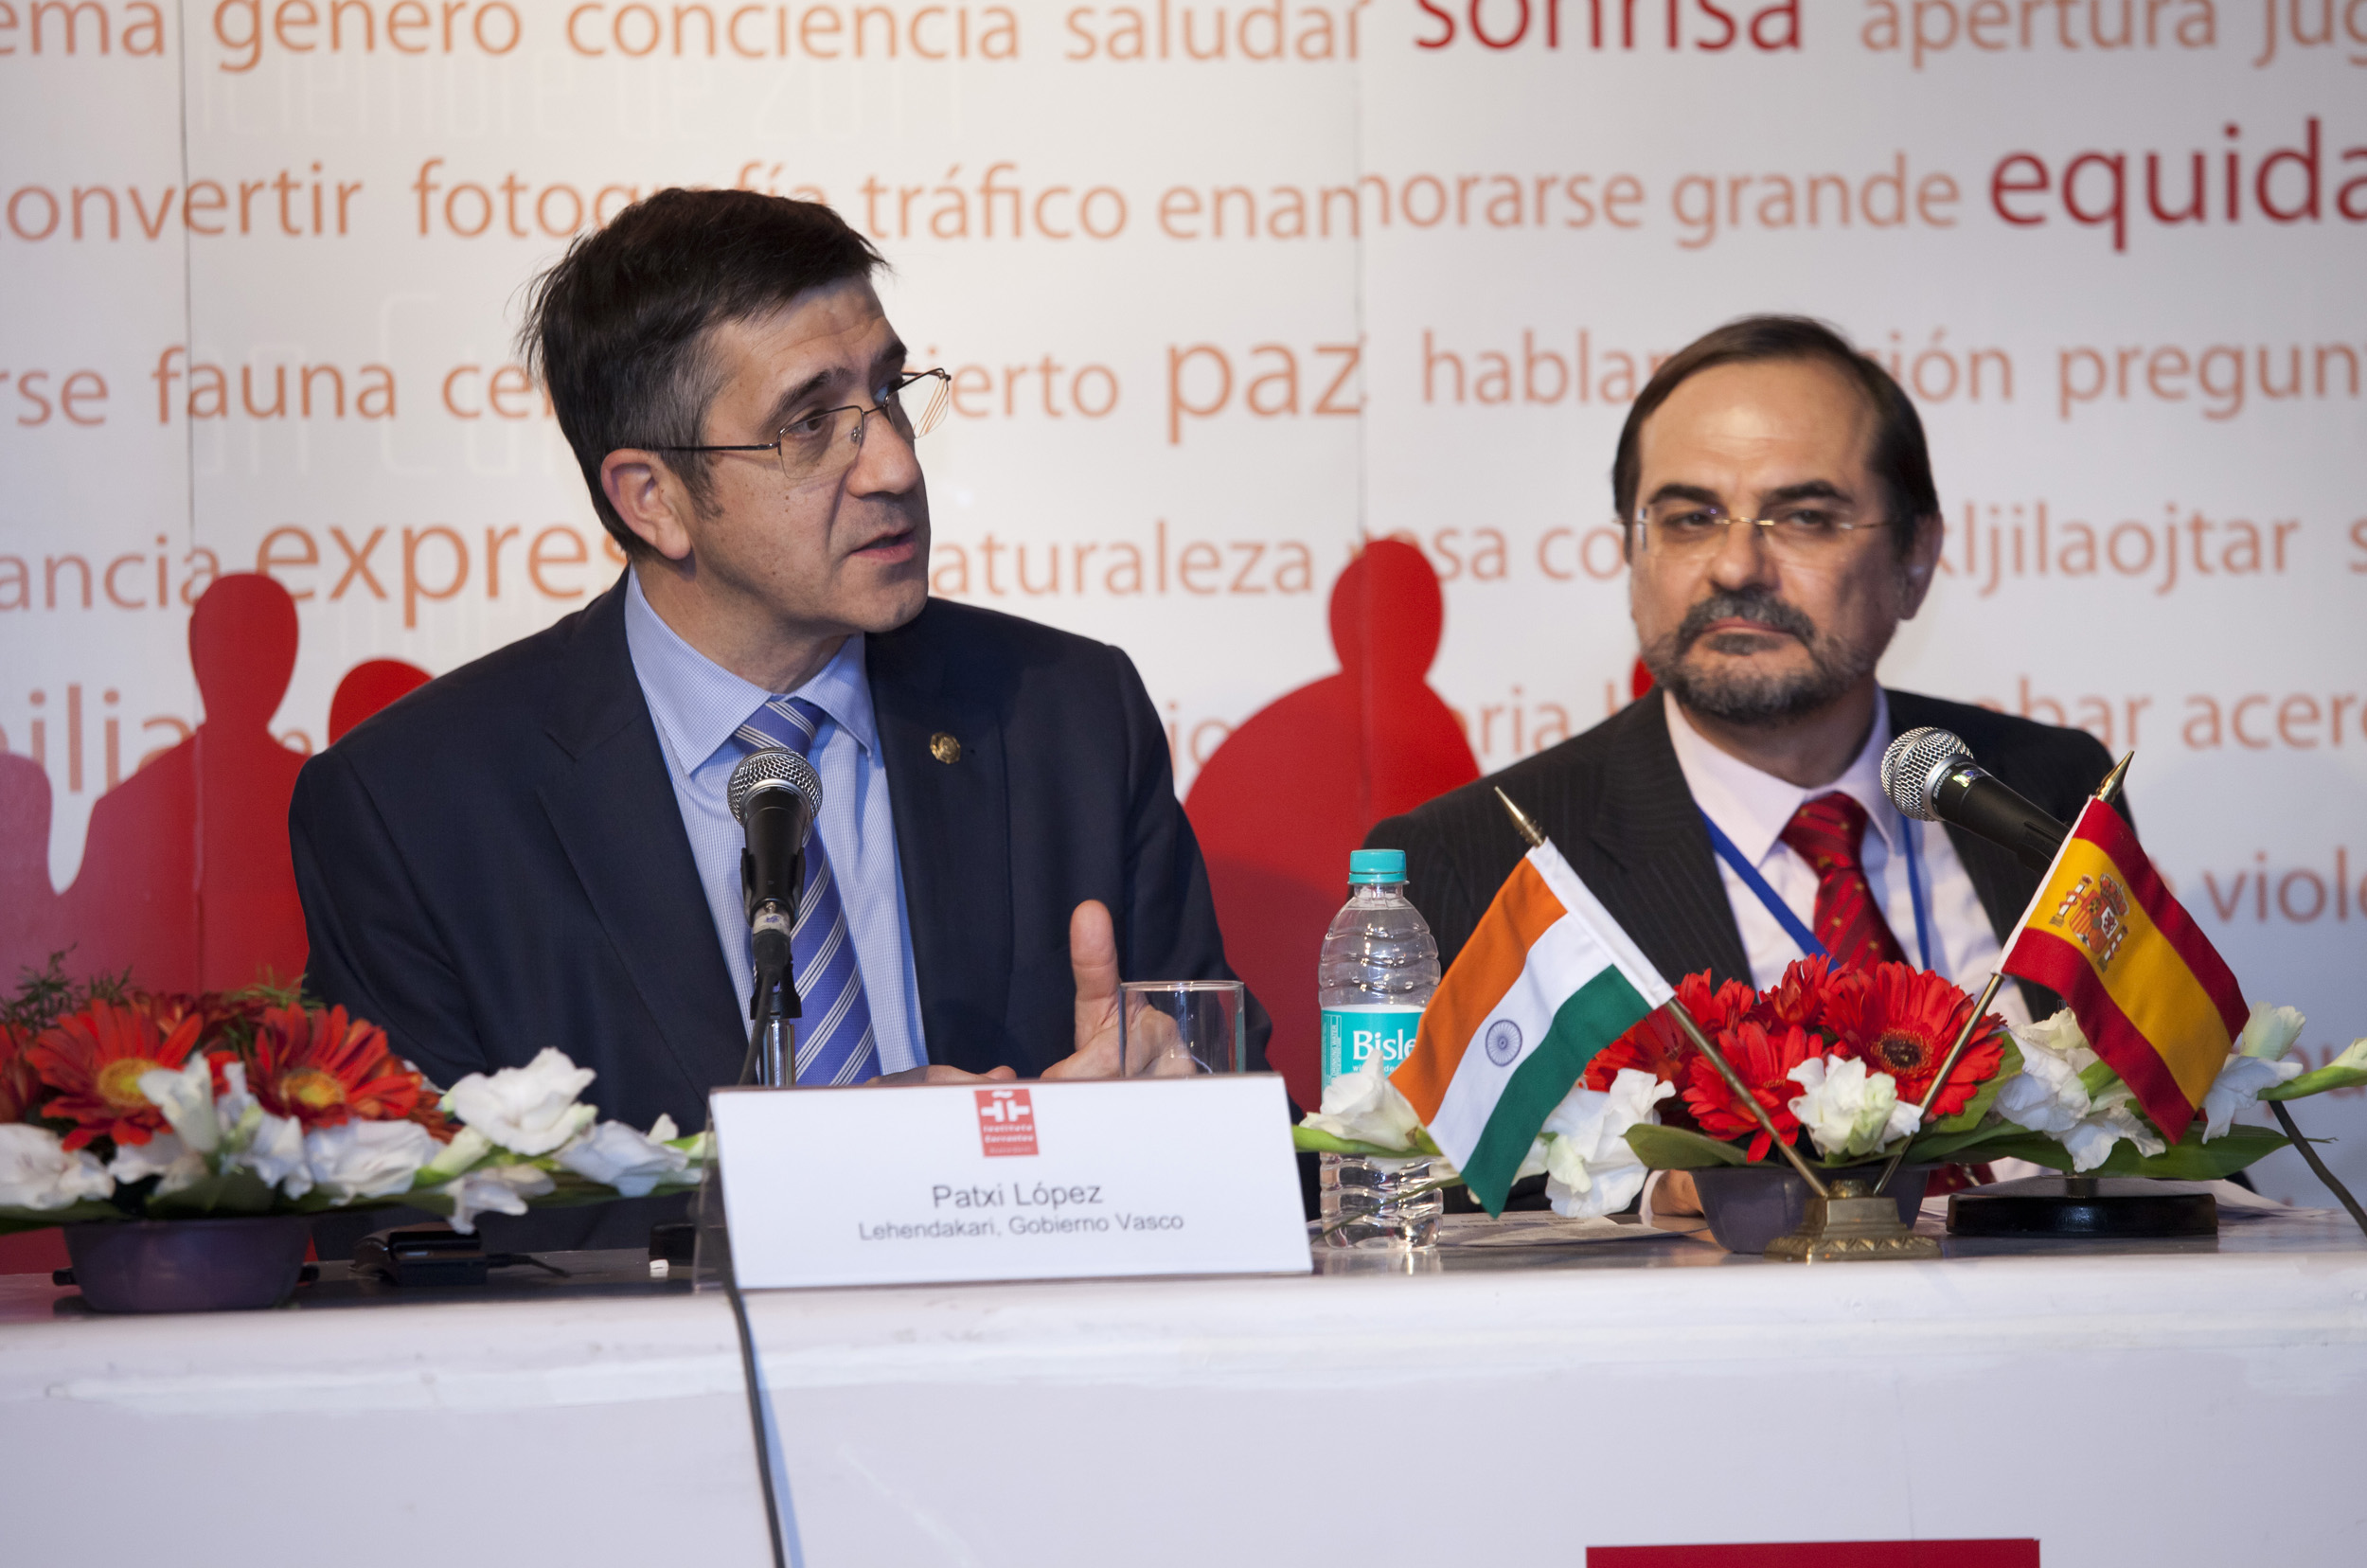 2012_03_21_jornadas3.jpg